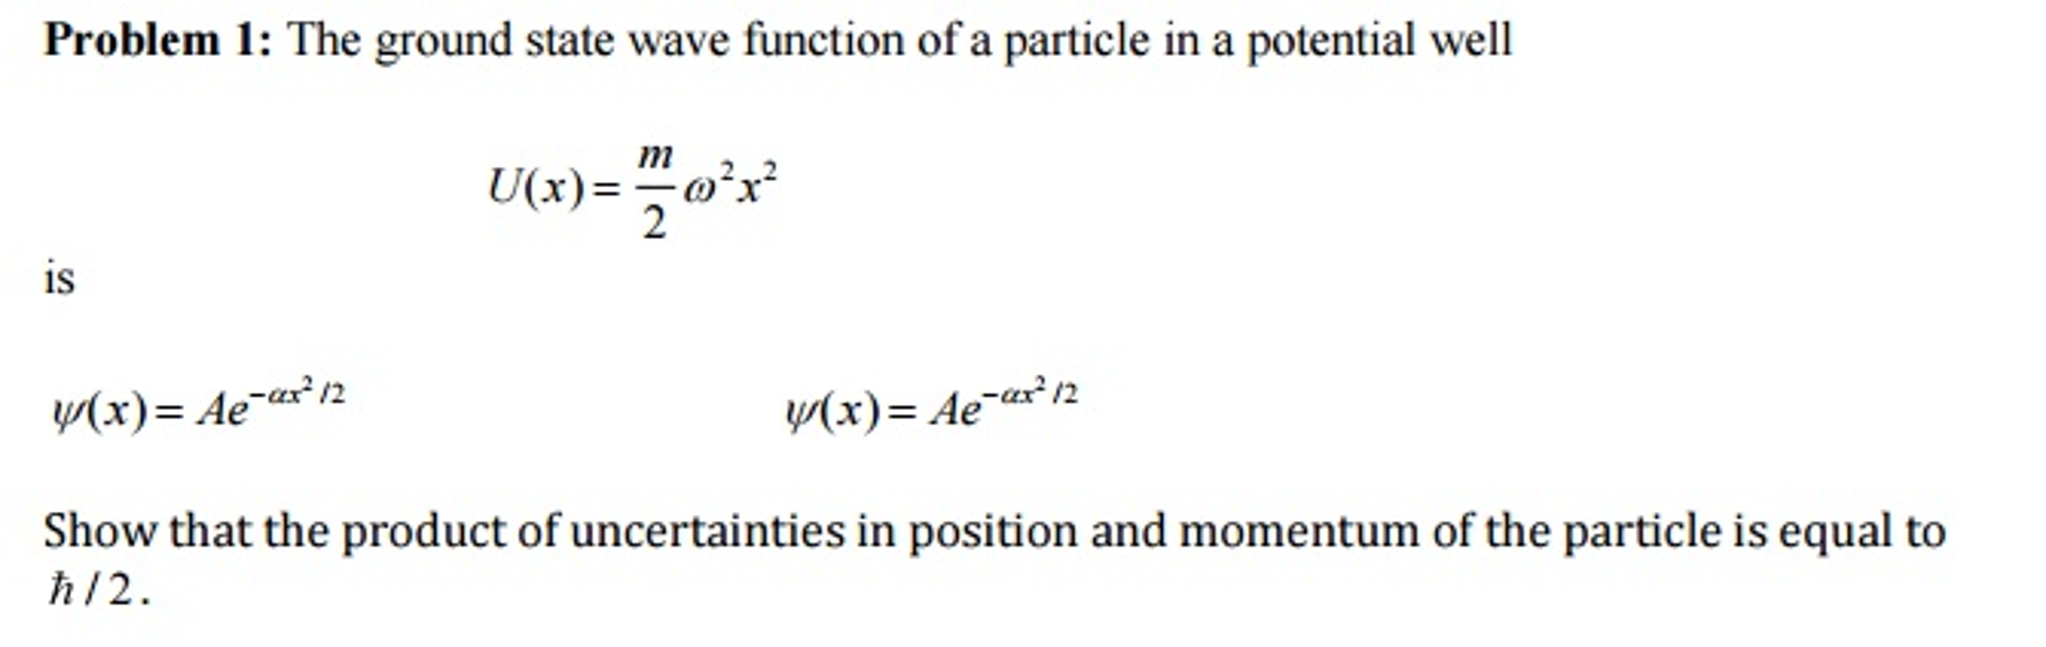 The ground state wave function of a particle in a